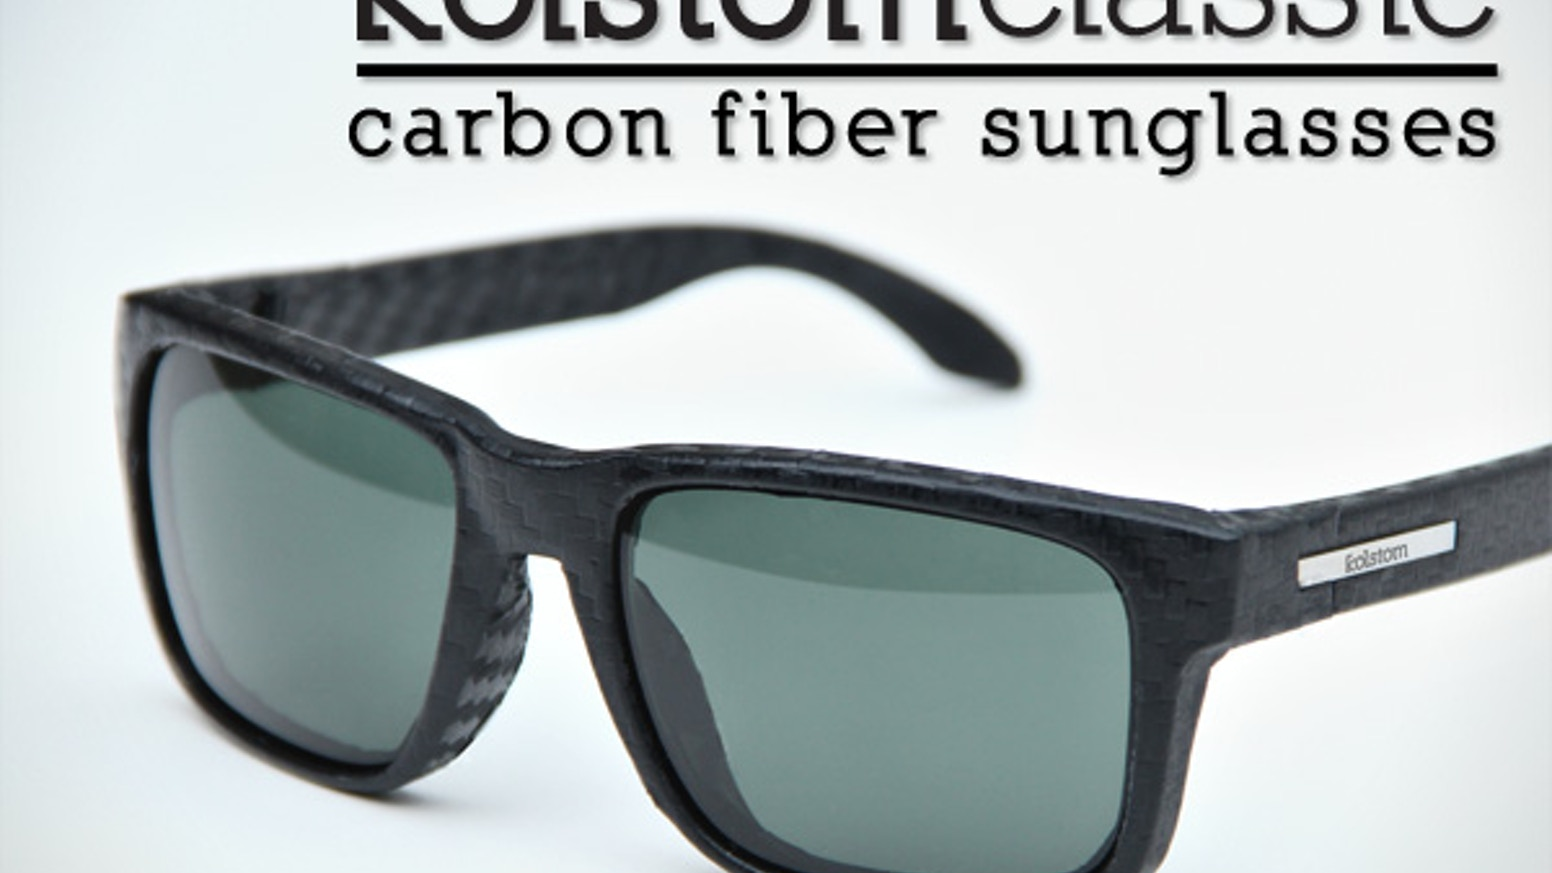 The world's first compression molded carbon fiber sunglasses featuring polarized optics